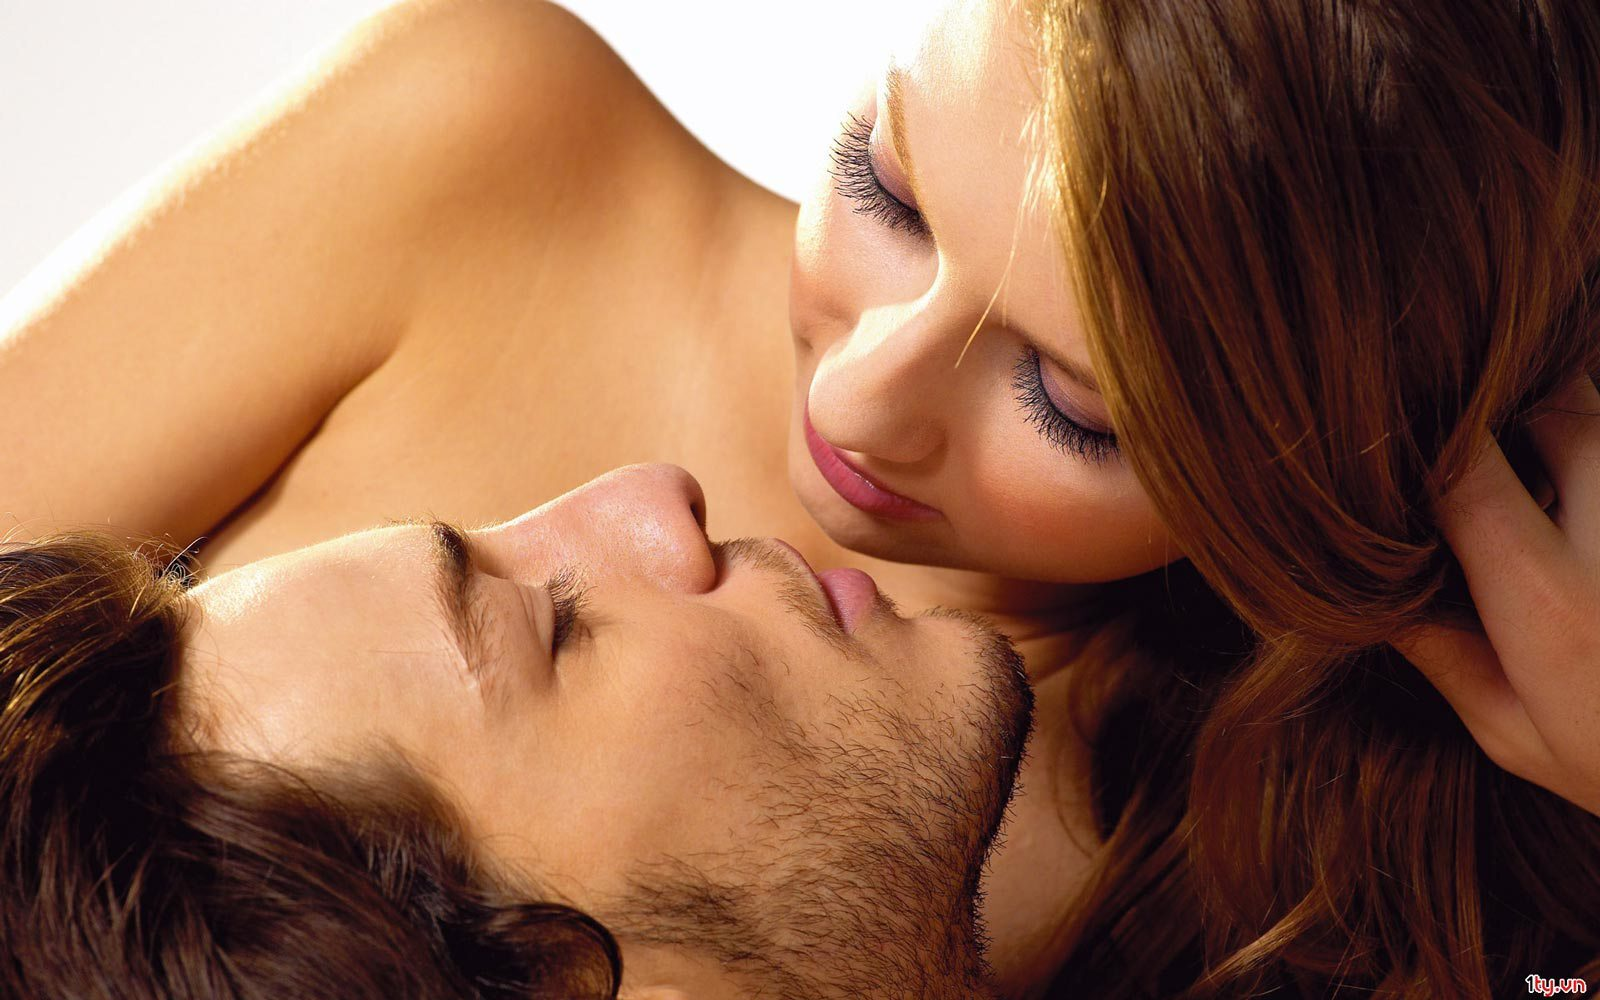 Ladies, 6 Things You Need To Tell Your Man When He's Naked